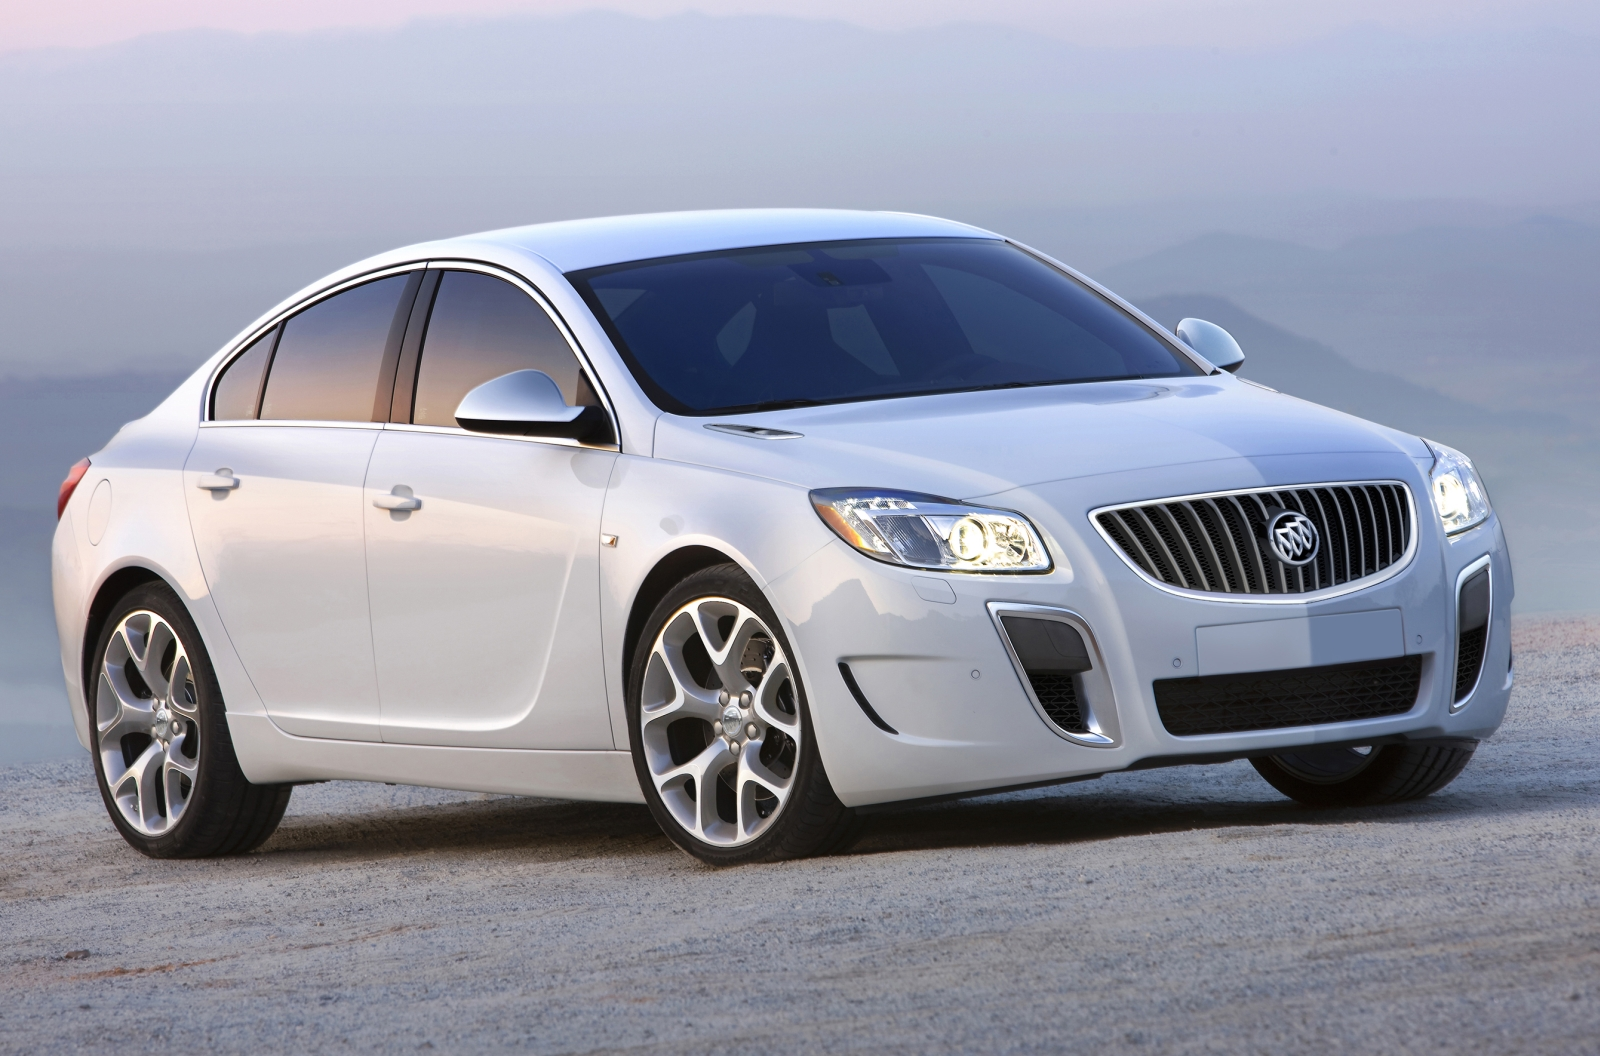 Buick Regal GS  2012  Reviews Buick Regal